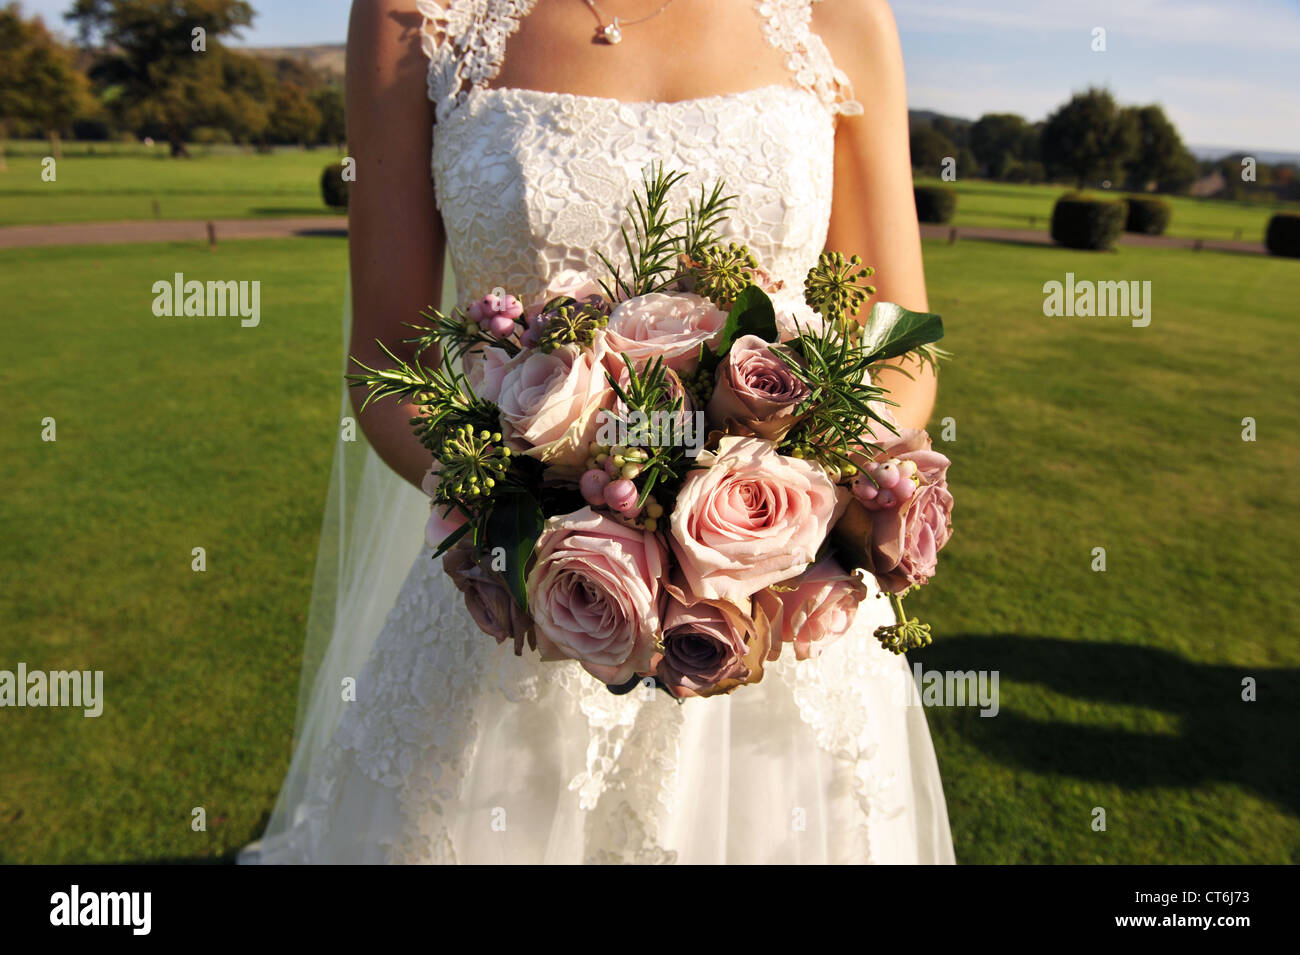 Bridal Bouquet Pink Roses Stock Photos Bridal Bouquet Pink Roses